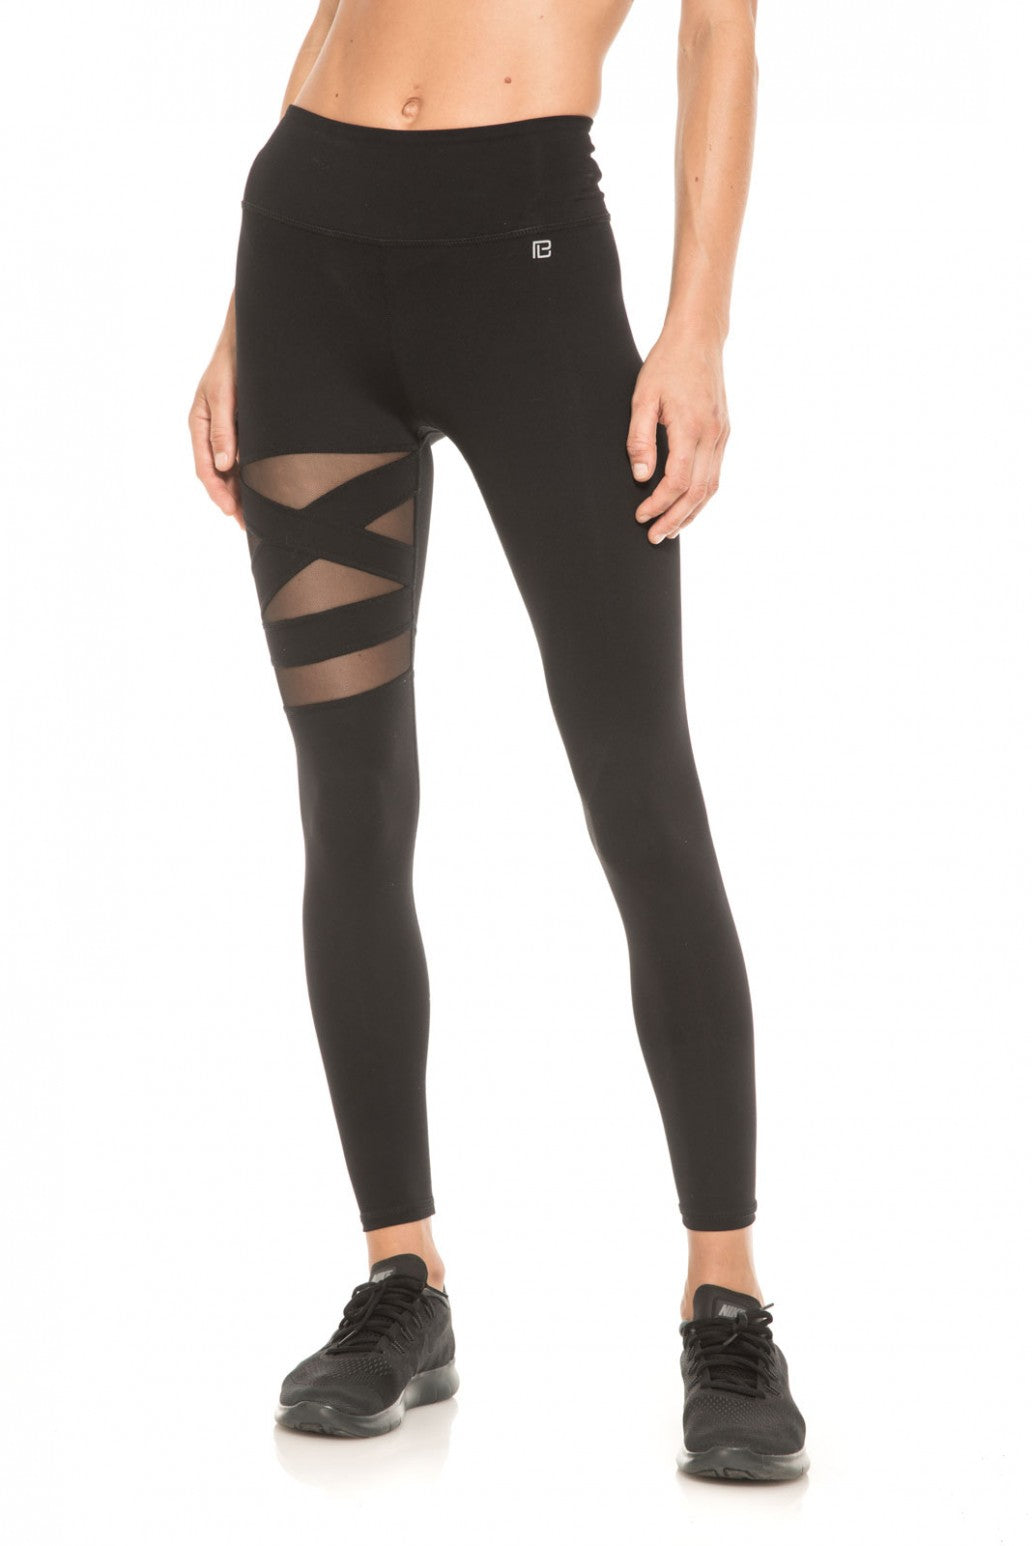 Women - Apparel - Active Wear - Bottom:Body Language Sportswear:The Lively Legging:WKND threads